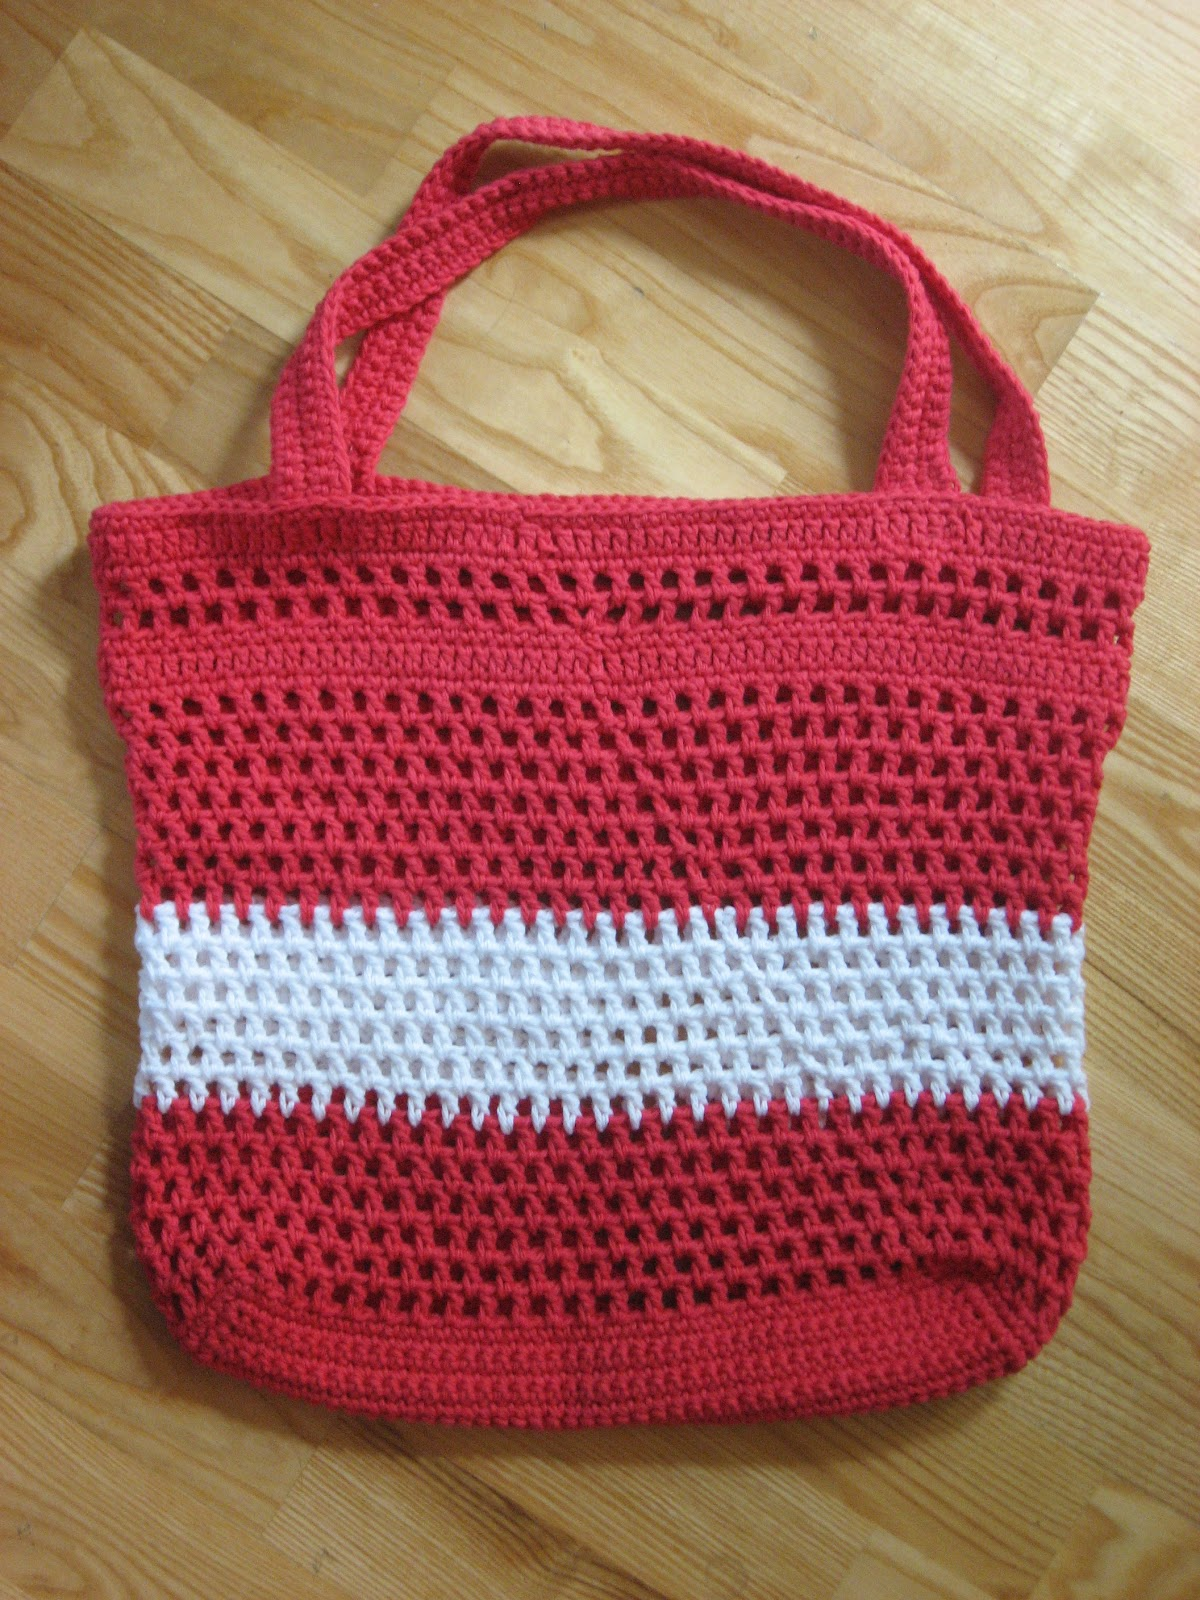 Crochet Projects: Market Bags Part 2